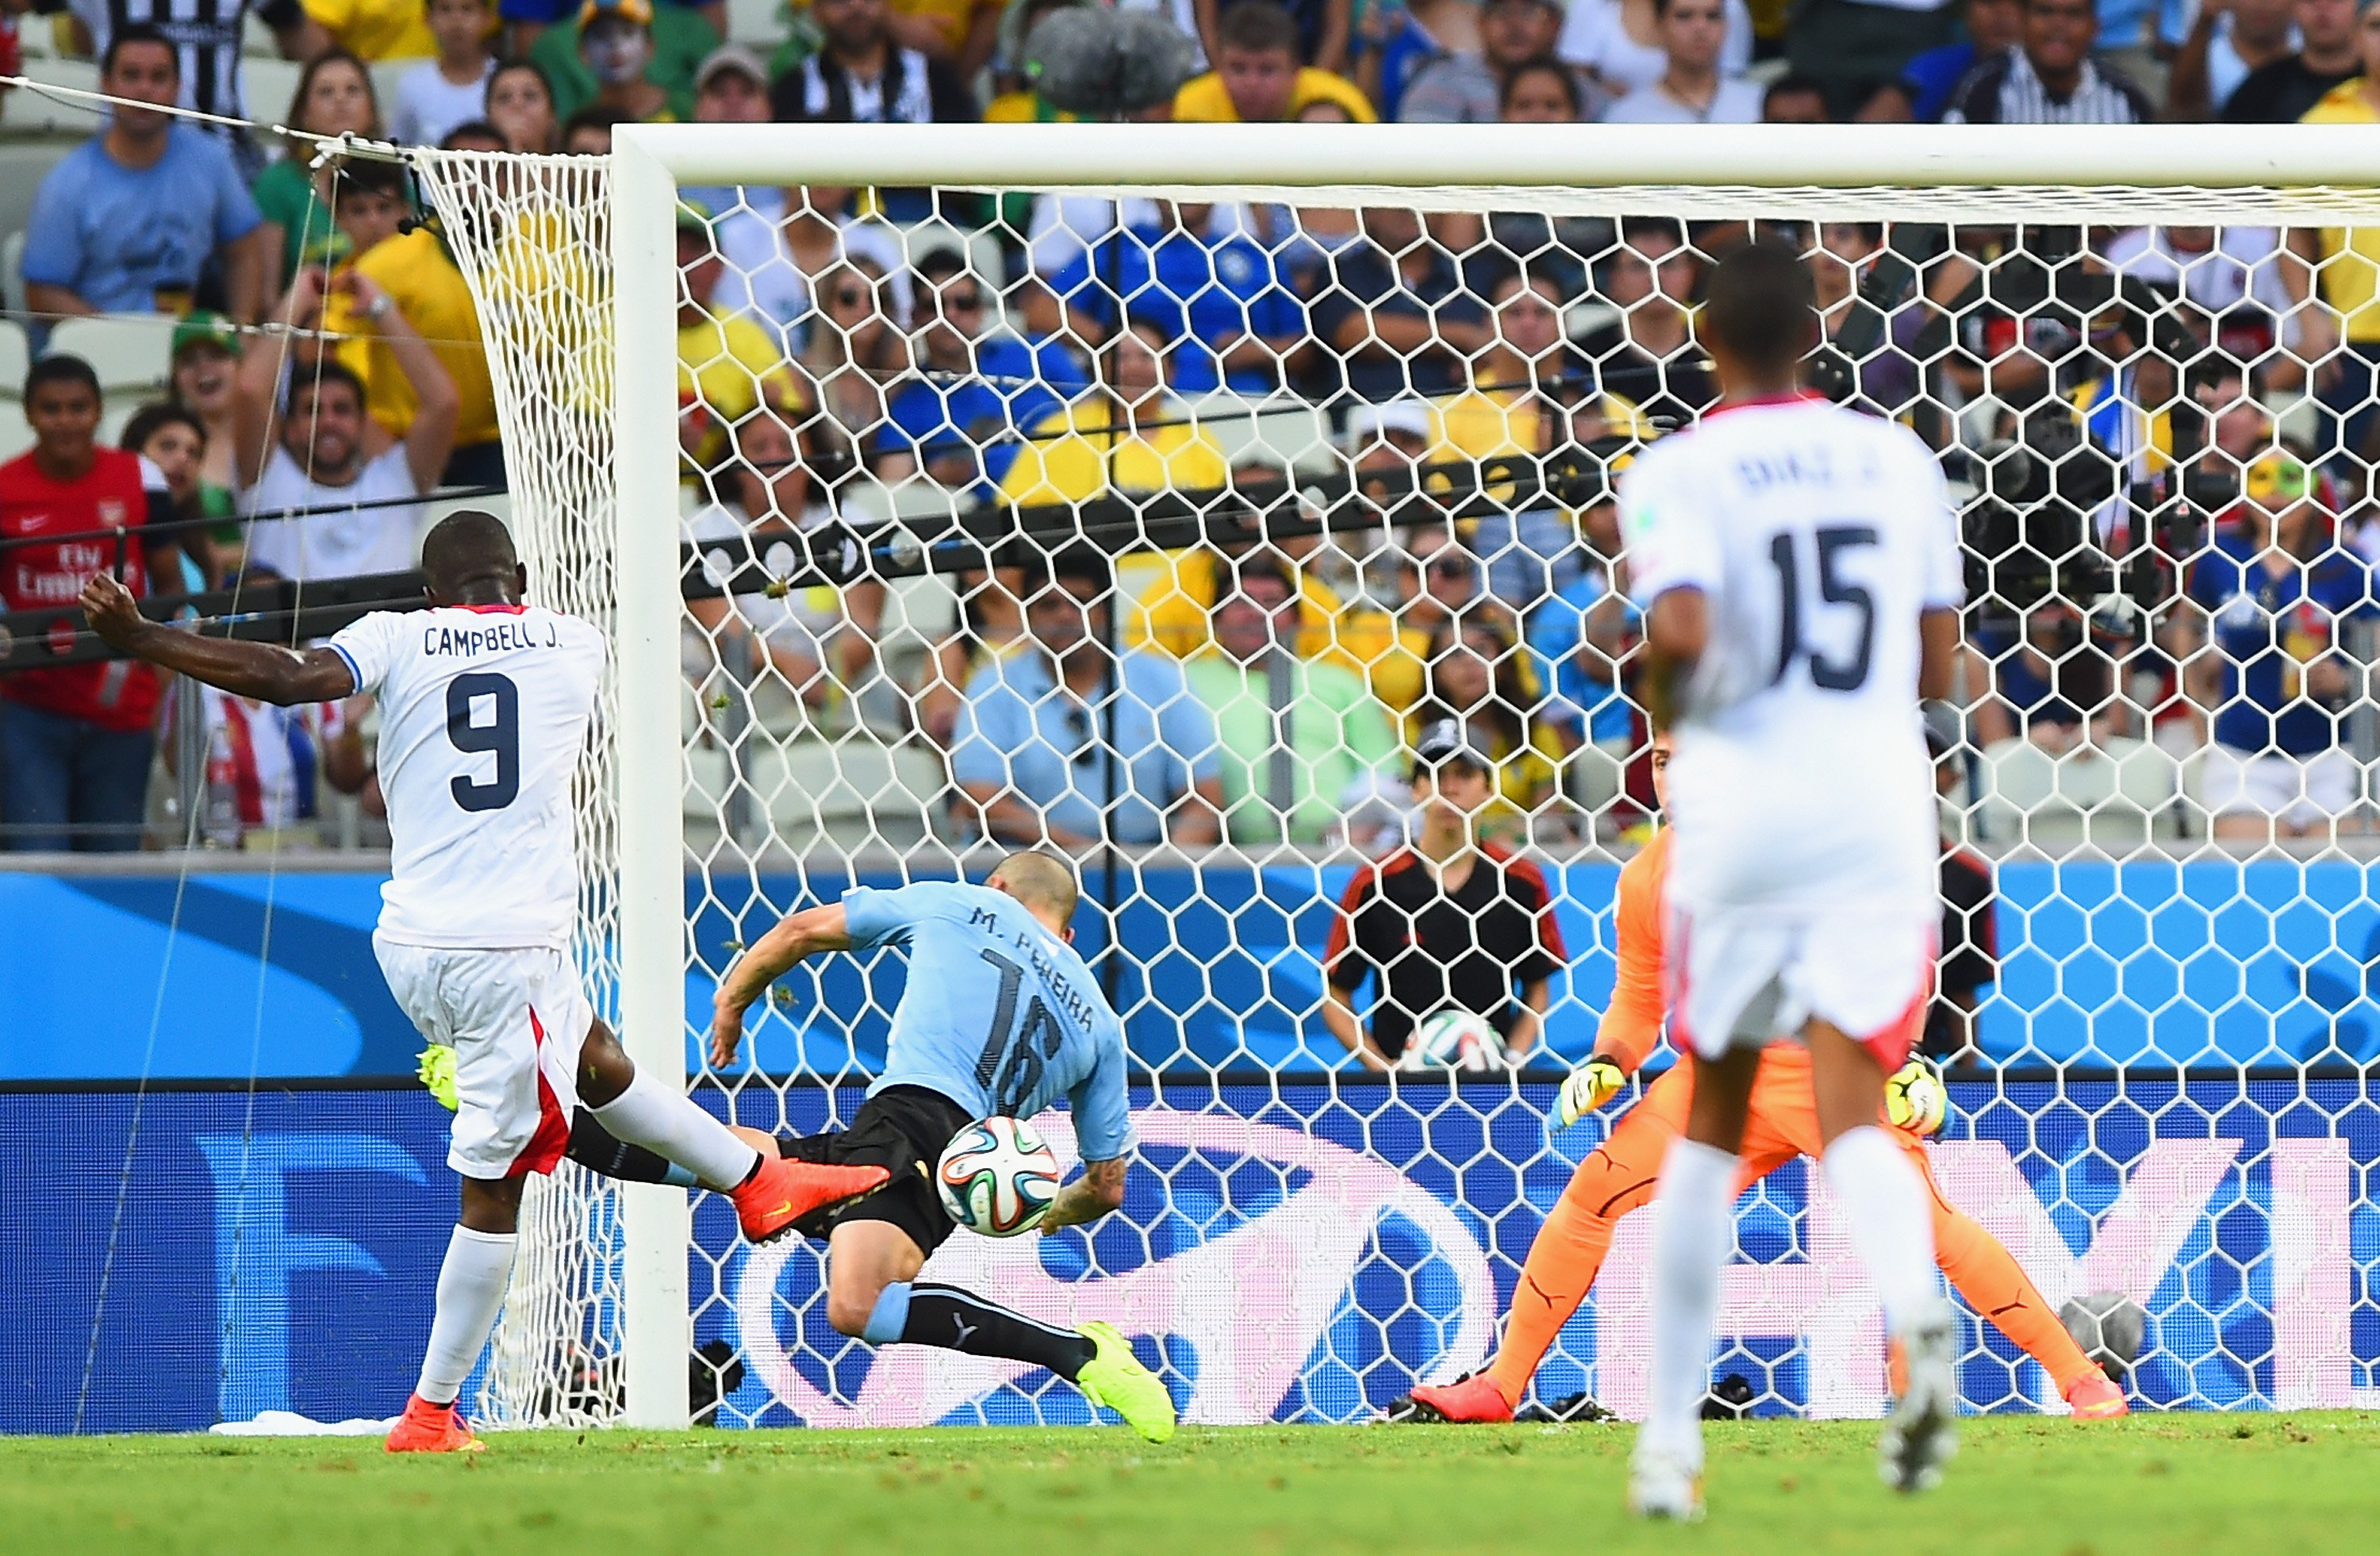 Joel Campbell of Costa Rica shoots and scores his team's first goal during the 2014 FIFA World Cup Brazil Group D match between Uruguay and Costa Rica at Castelao on June 14, 2014 in Fortaleza, Brazil. Photo: Getty Images